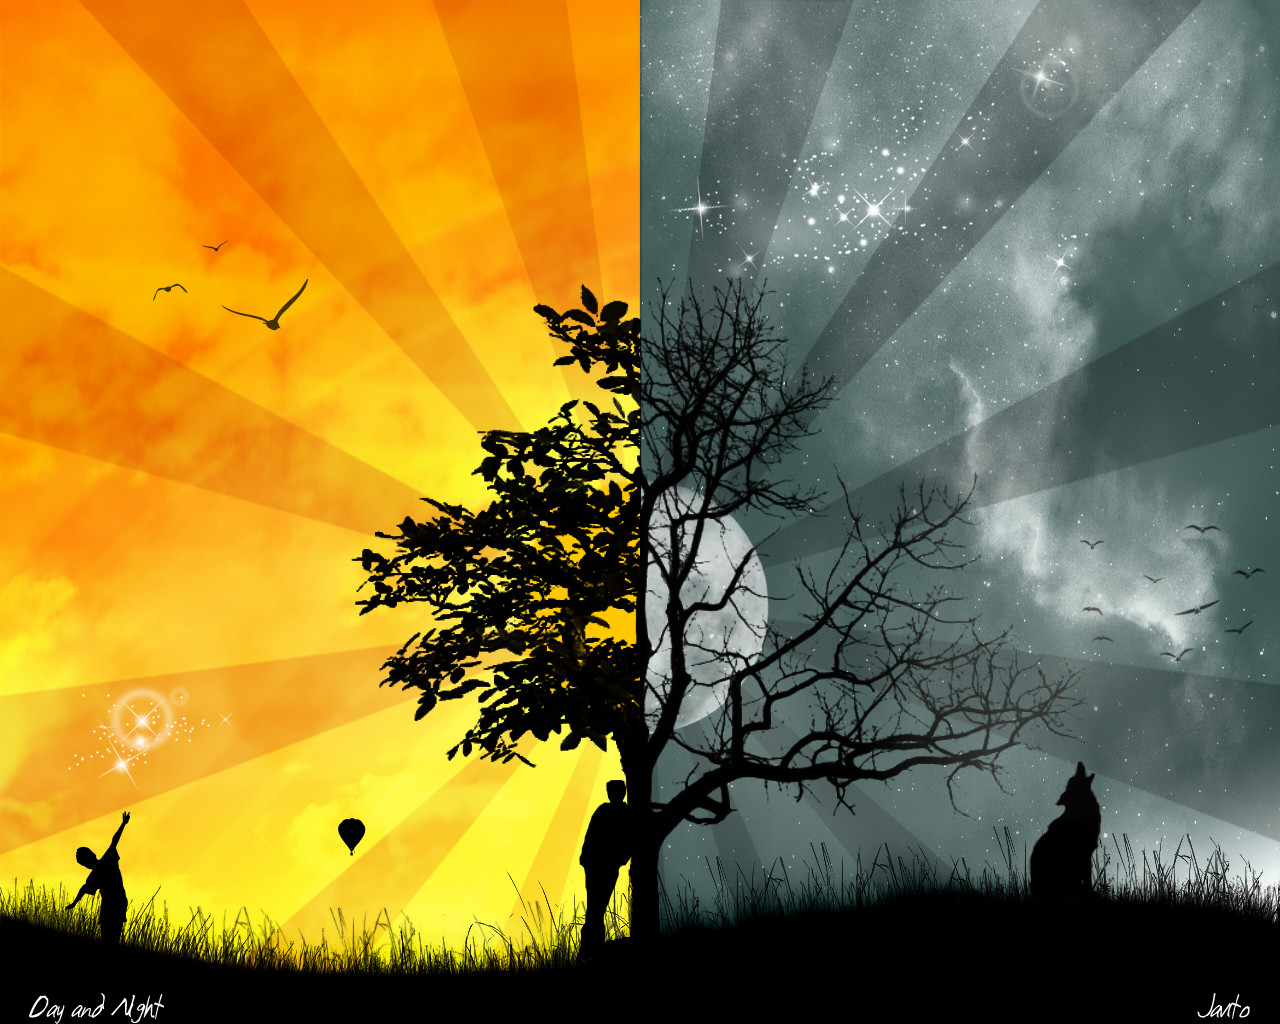 Image Gallary 9: Beautiful and latest cool wallpaper designs for desktop